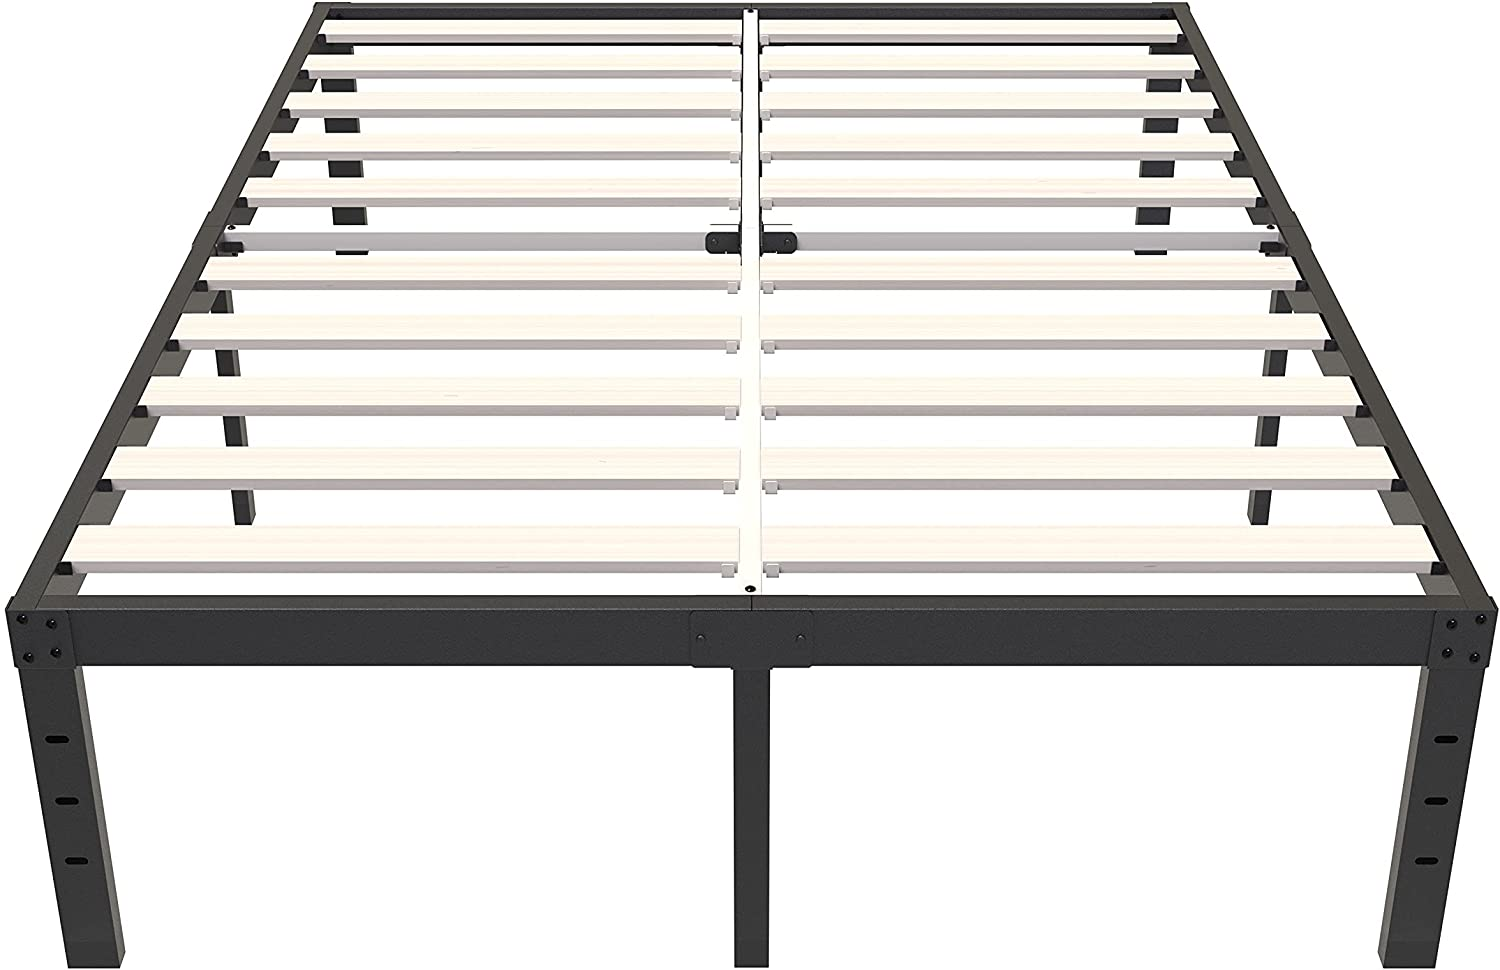 ZIYOO 18 Inch Queen Size Bed Frame with Solid Wooden Slats, Maximum Storage Metal Platform, No Box Spring Needed Heavy Duty Mattress Foundation 3500lbs Support, Easy Assembly, Noise Free